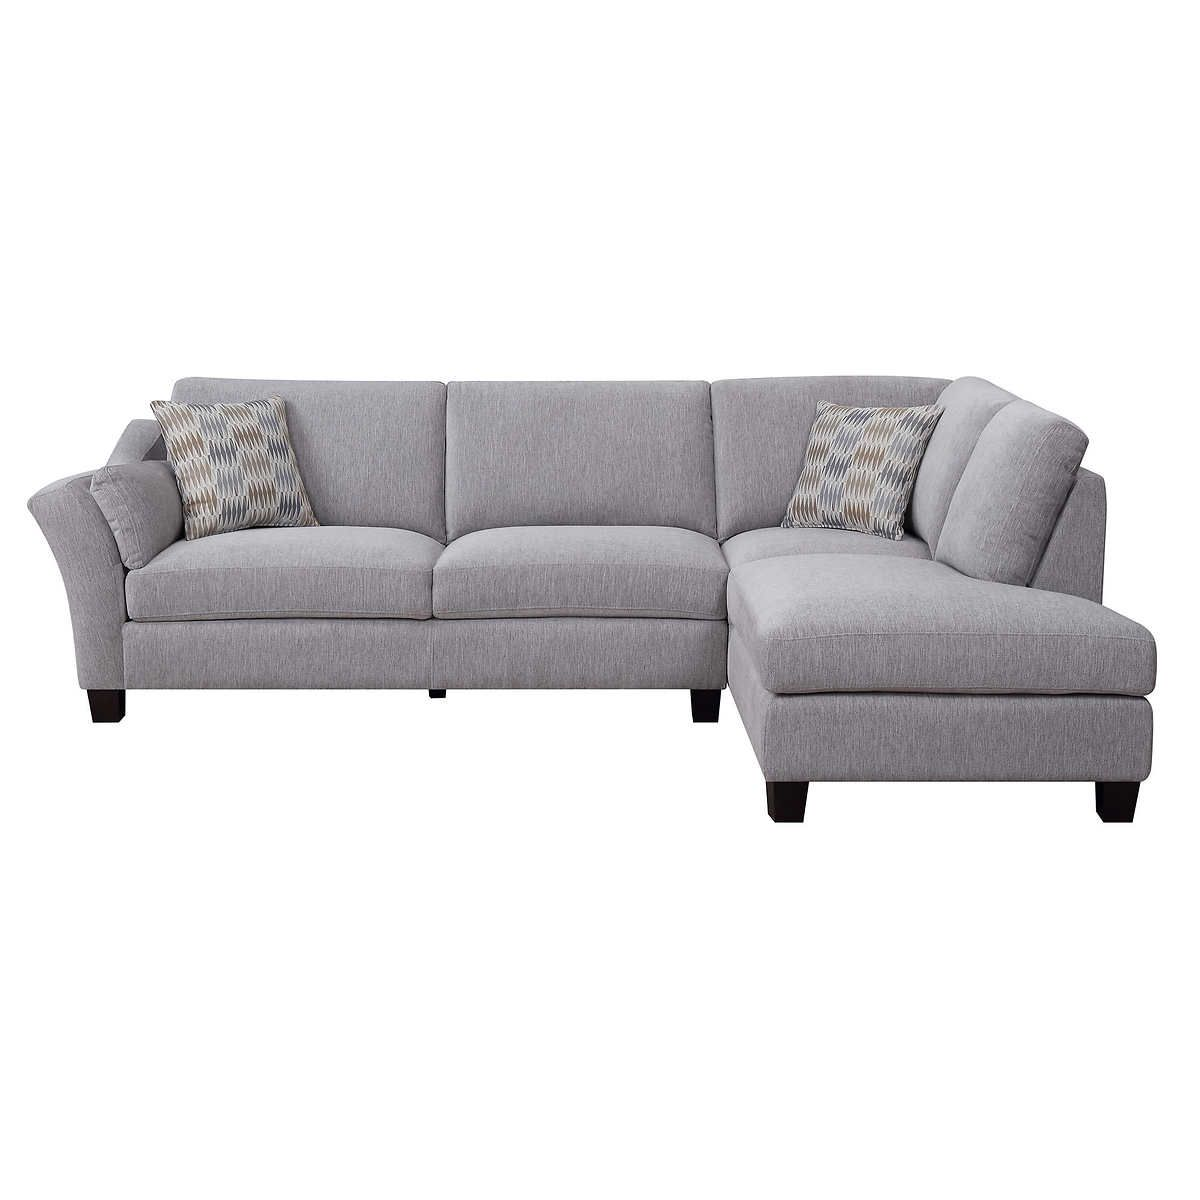 pin by c z on info fabric sectional couch fabric rh pinterest com